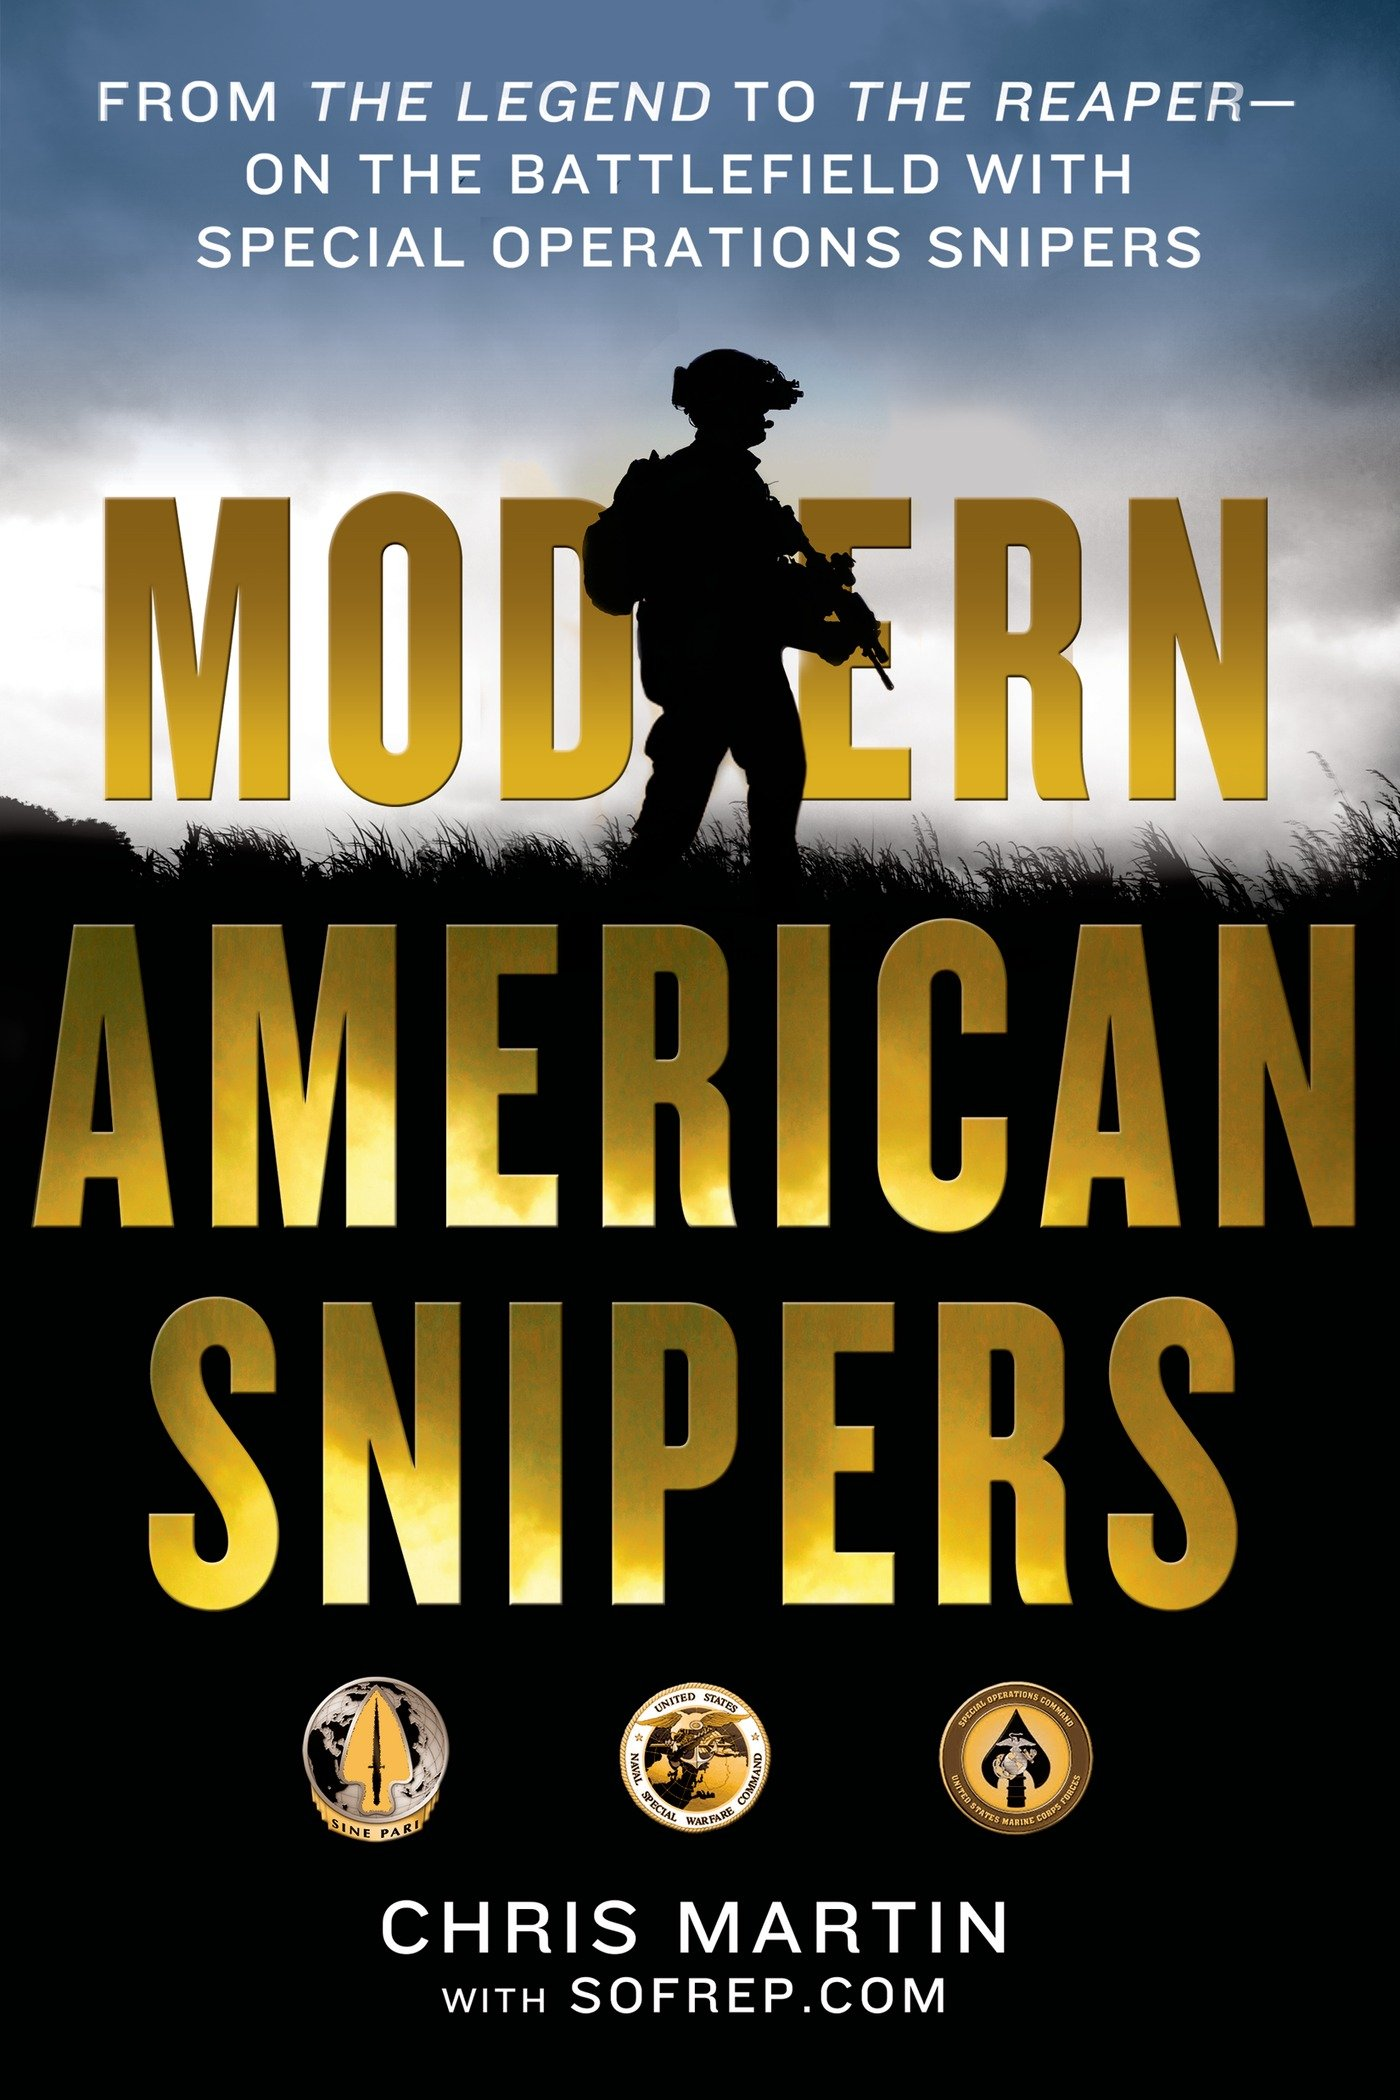 635603713462438325-OFF-Modern-American-Snipers